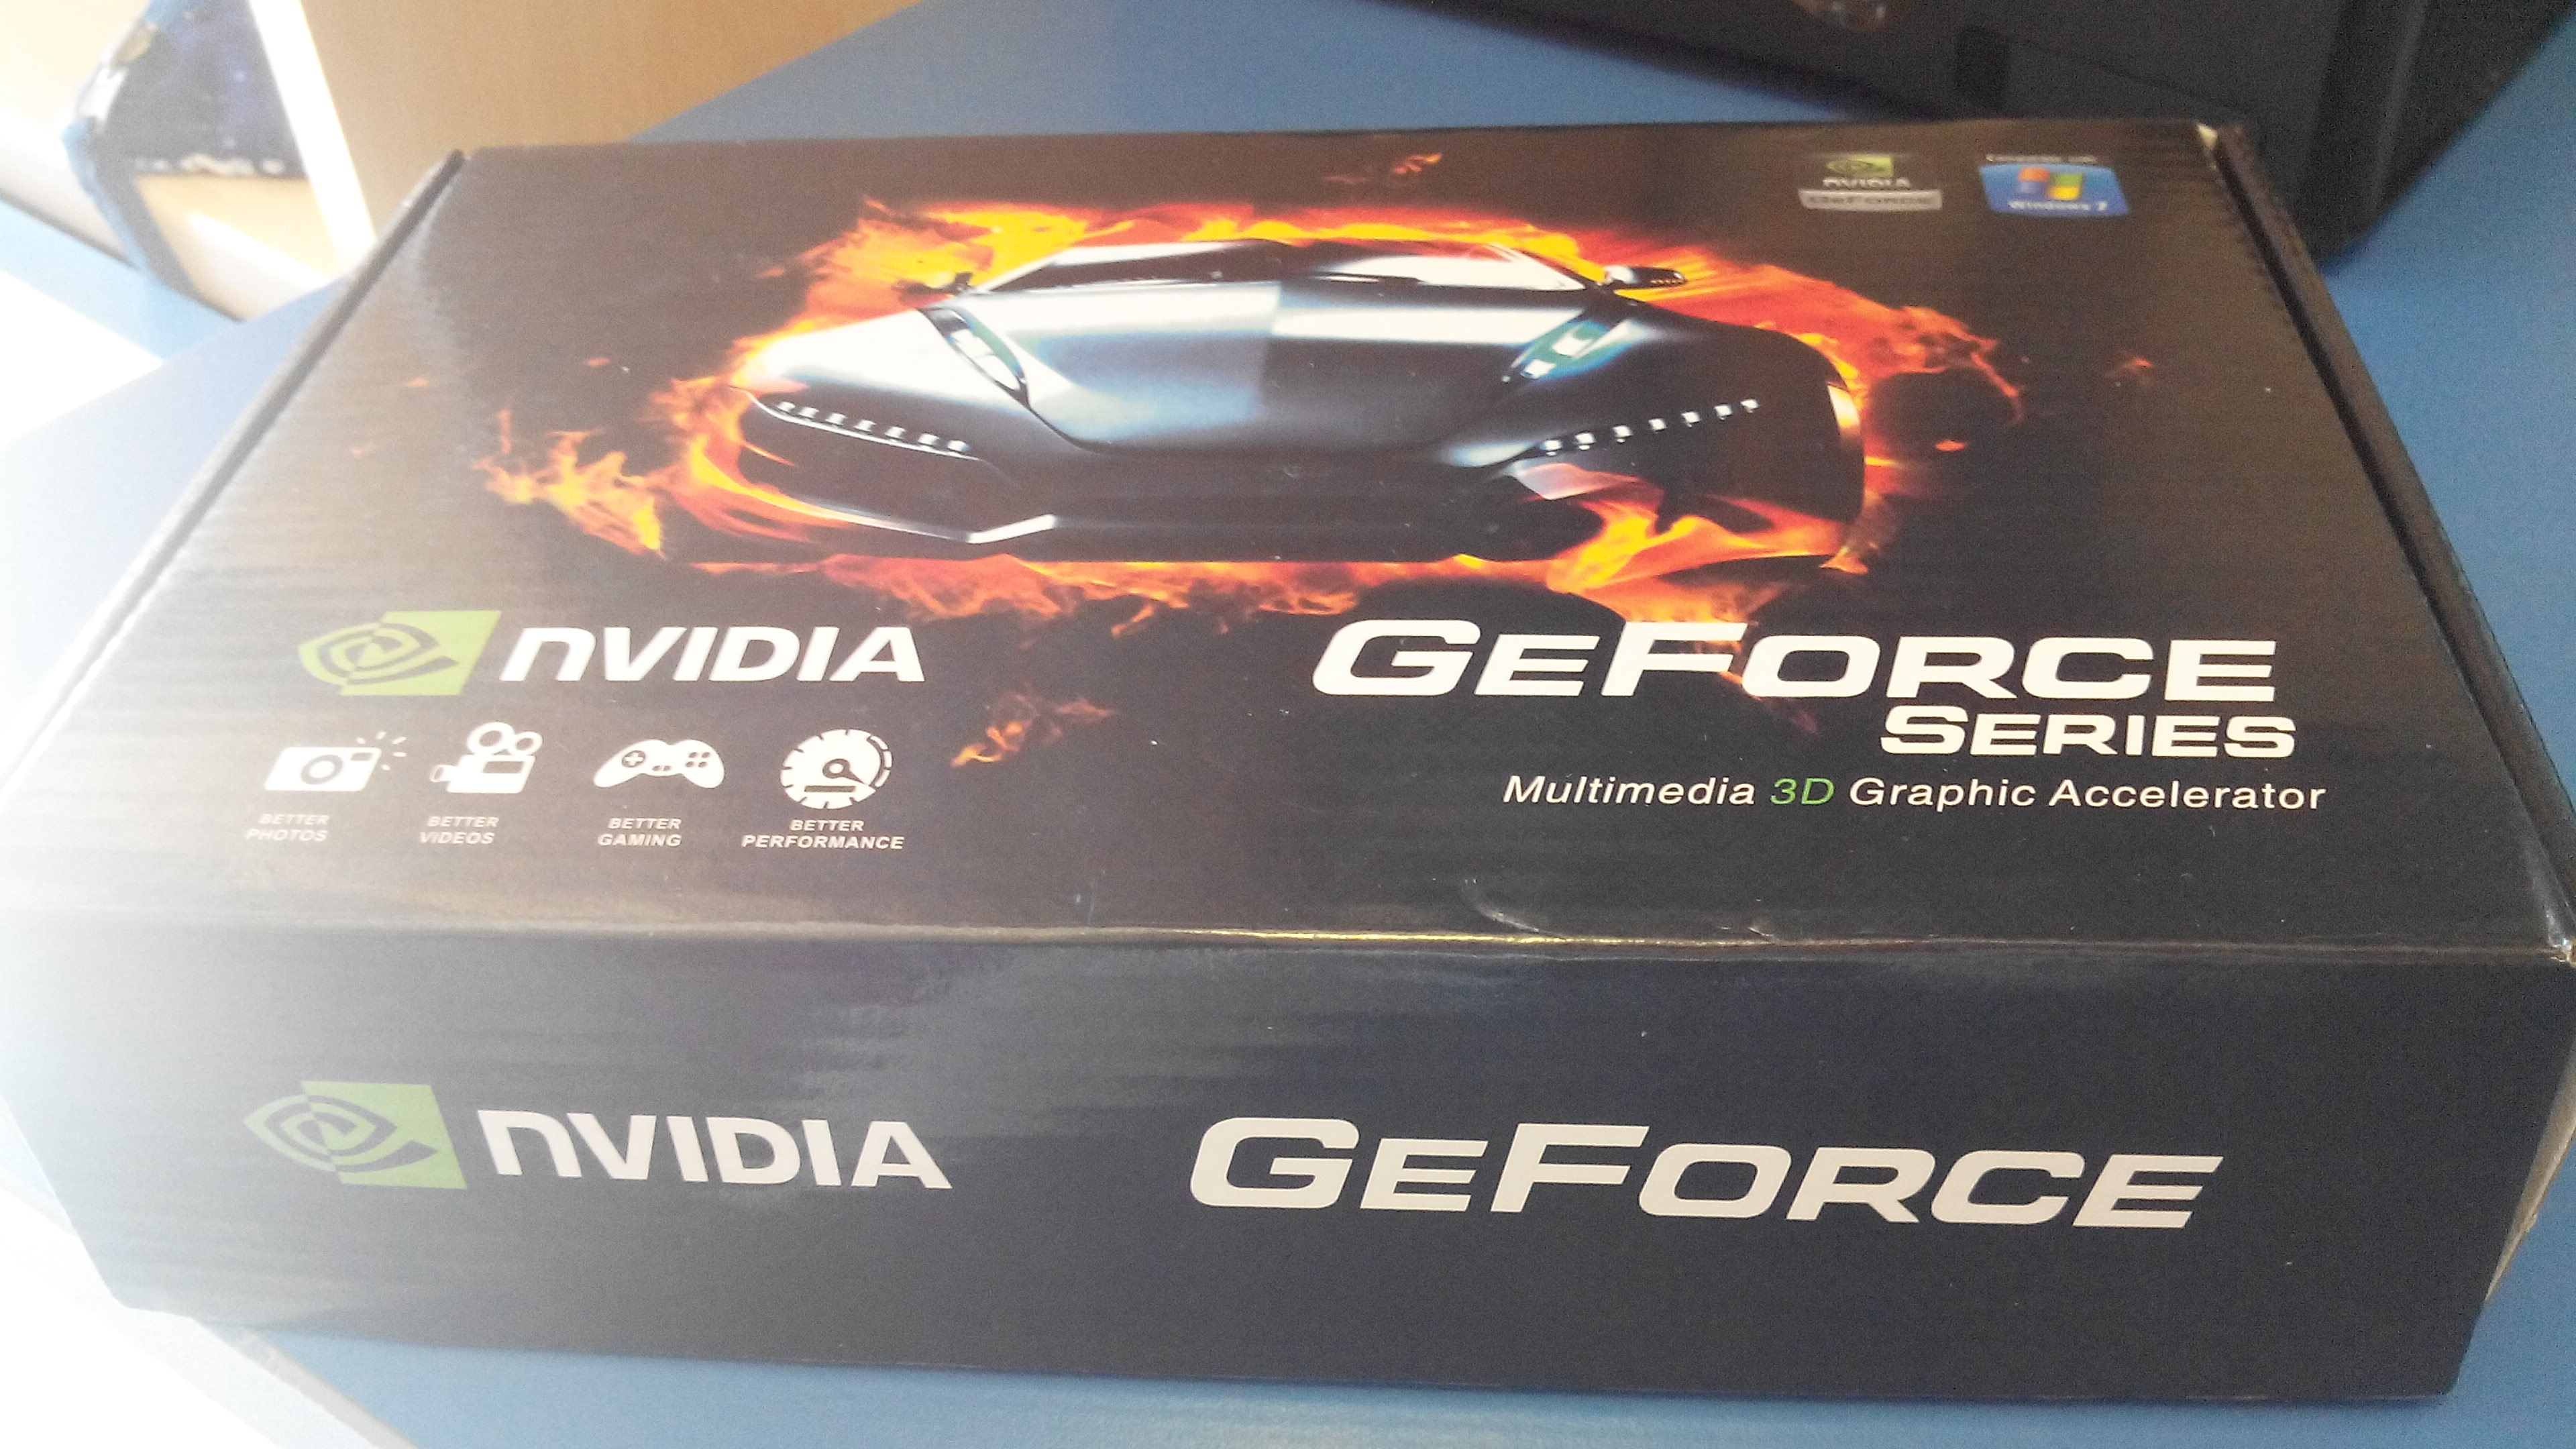 Is this a fake Nvidia Geforce GTX 750 TI? | TechPowerUp Forums